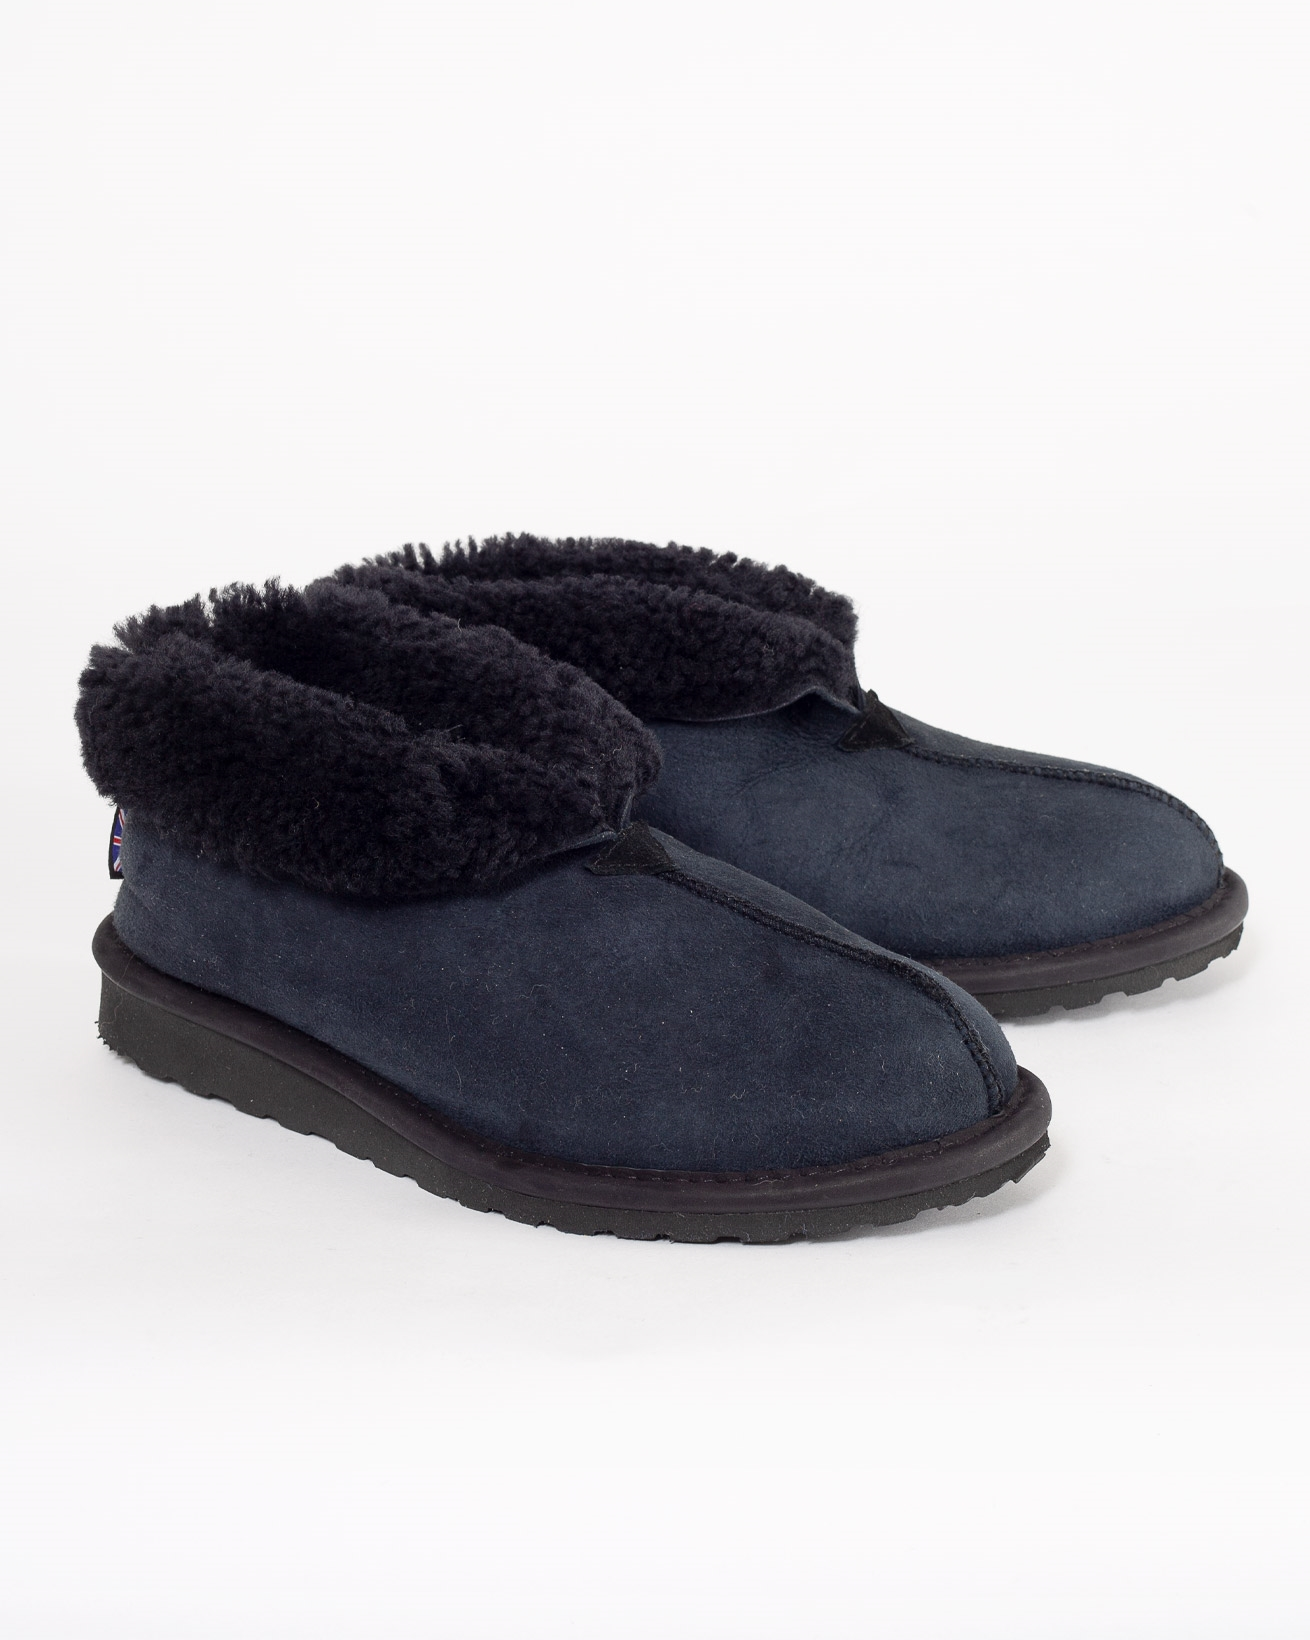 Men's Bootee Slippers - Size 8 - Navy - 884